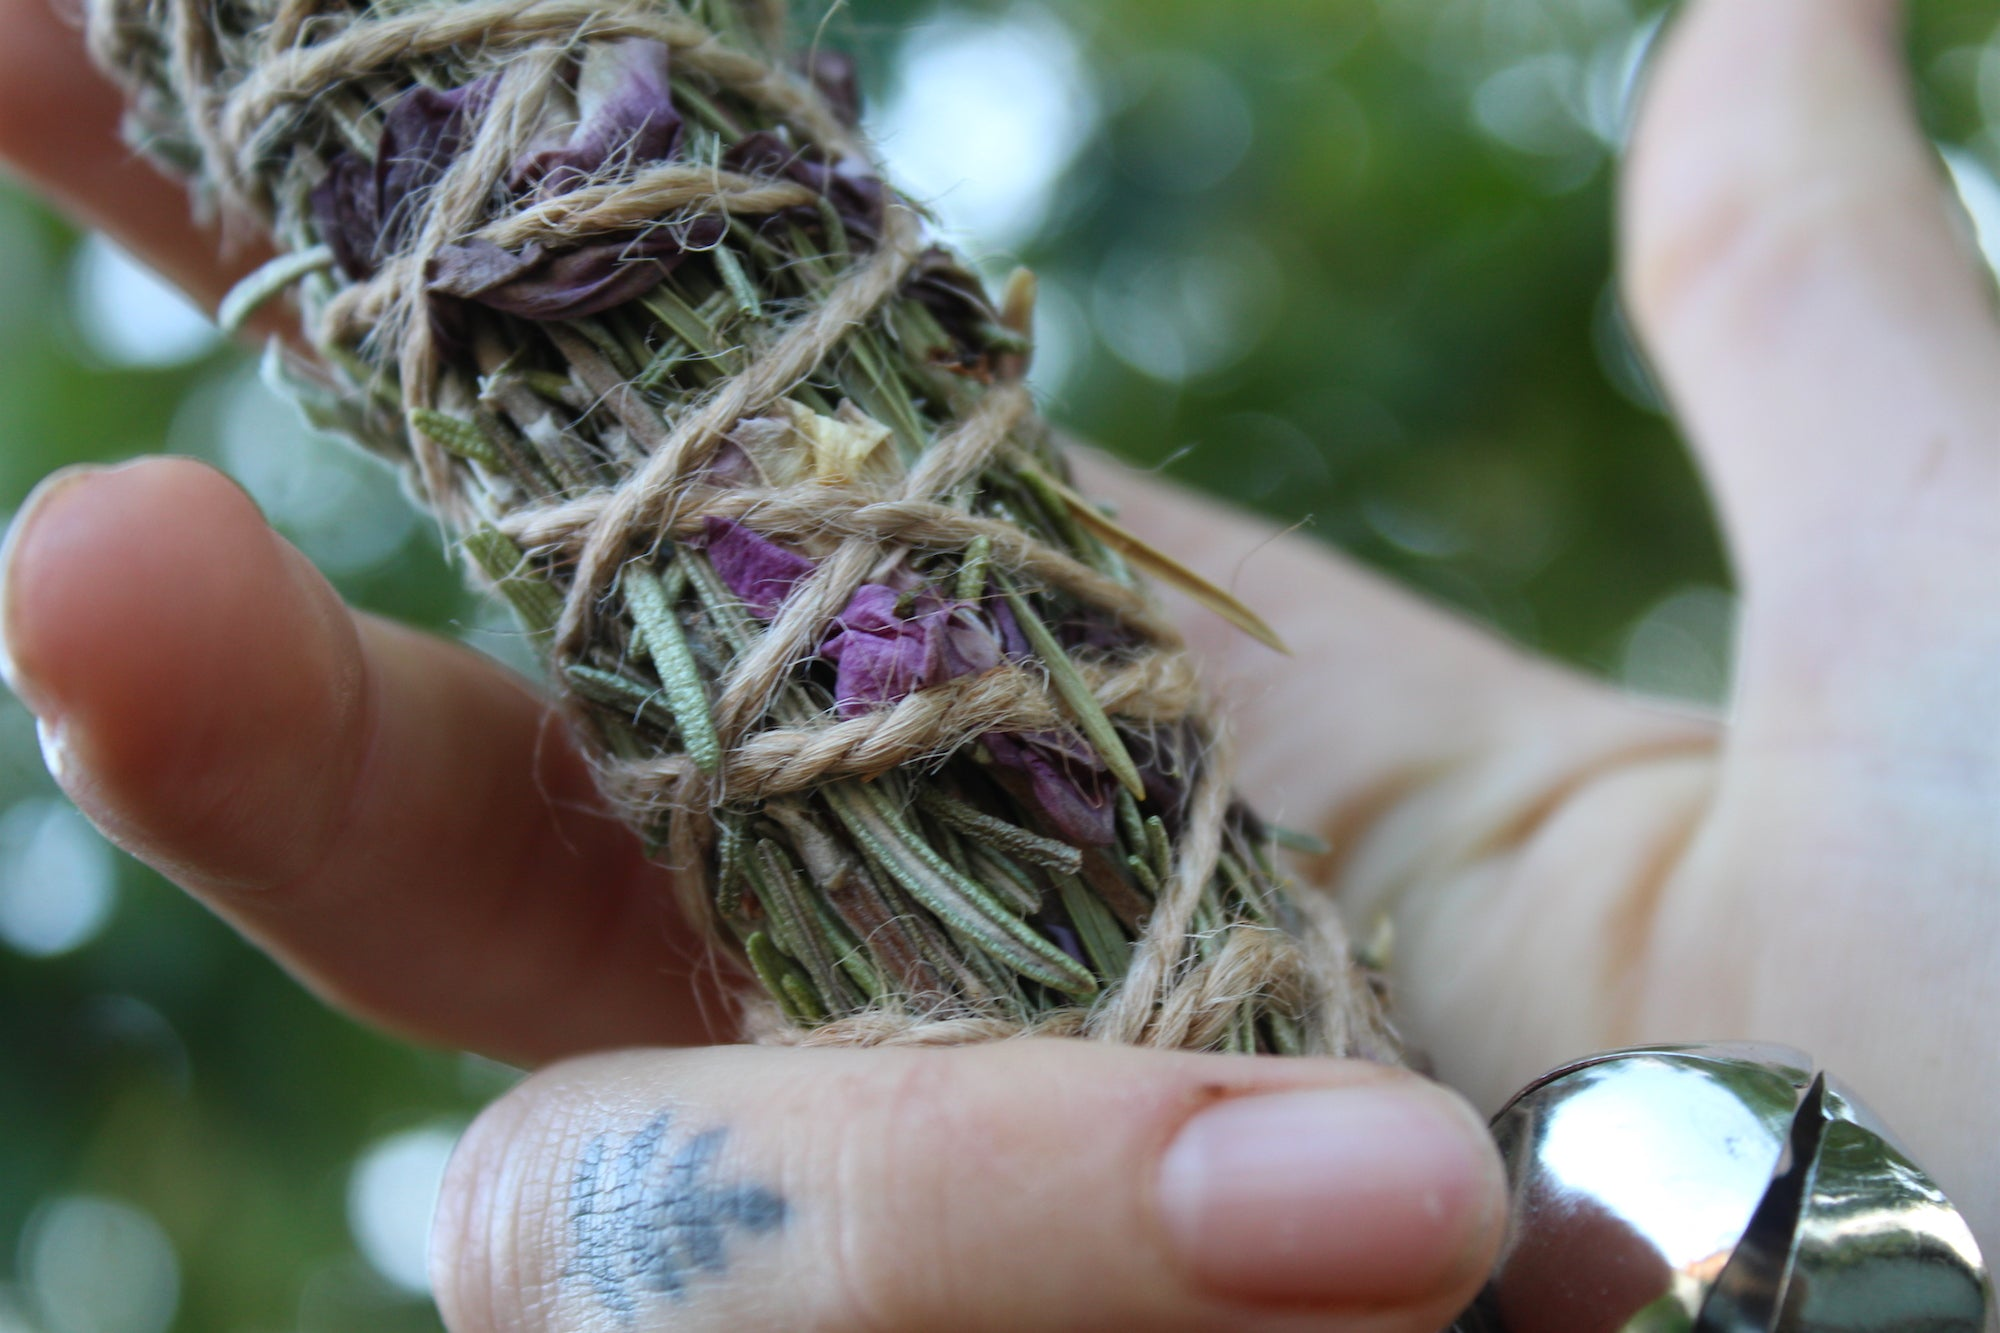 EXHALE Handmade Herbal Smudge Stick